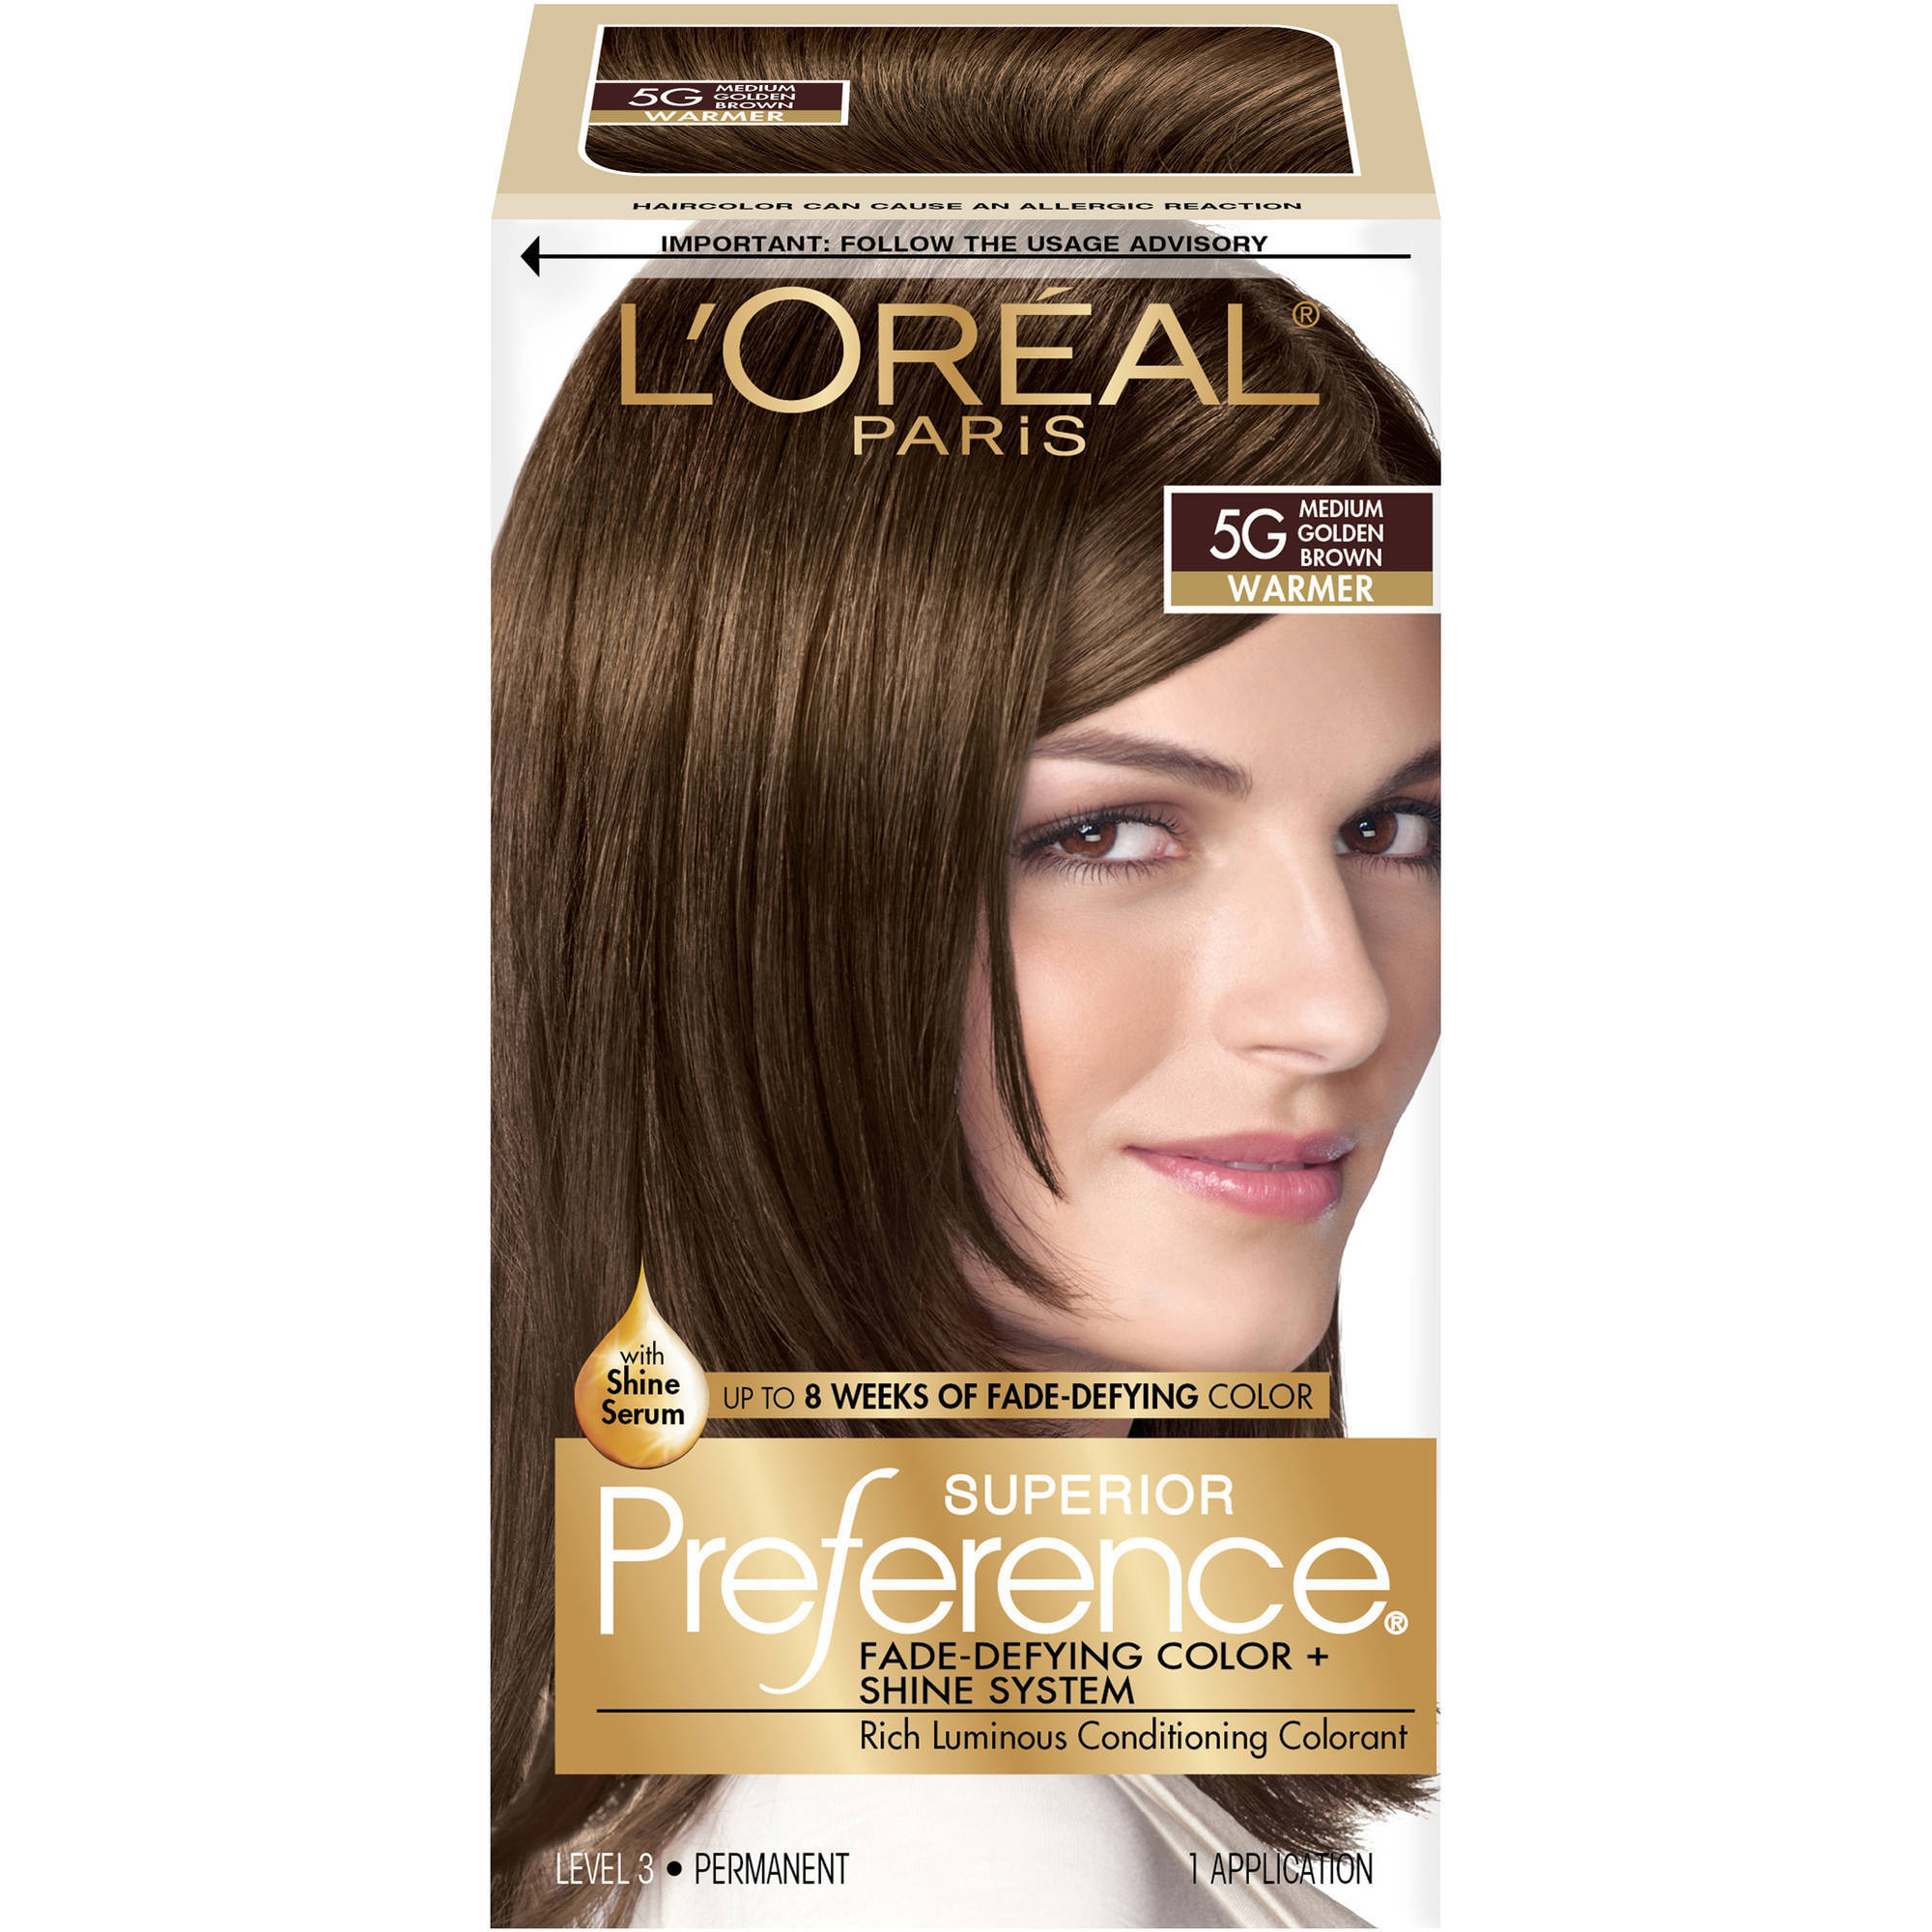 L Oreal Paris Superior Preference Fade Defying Color